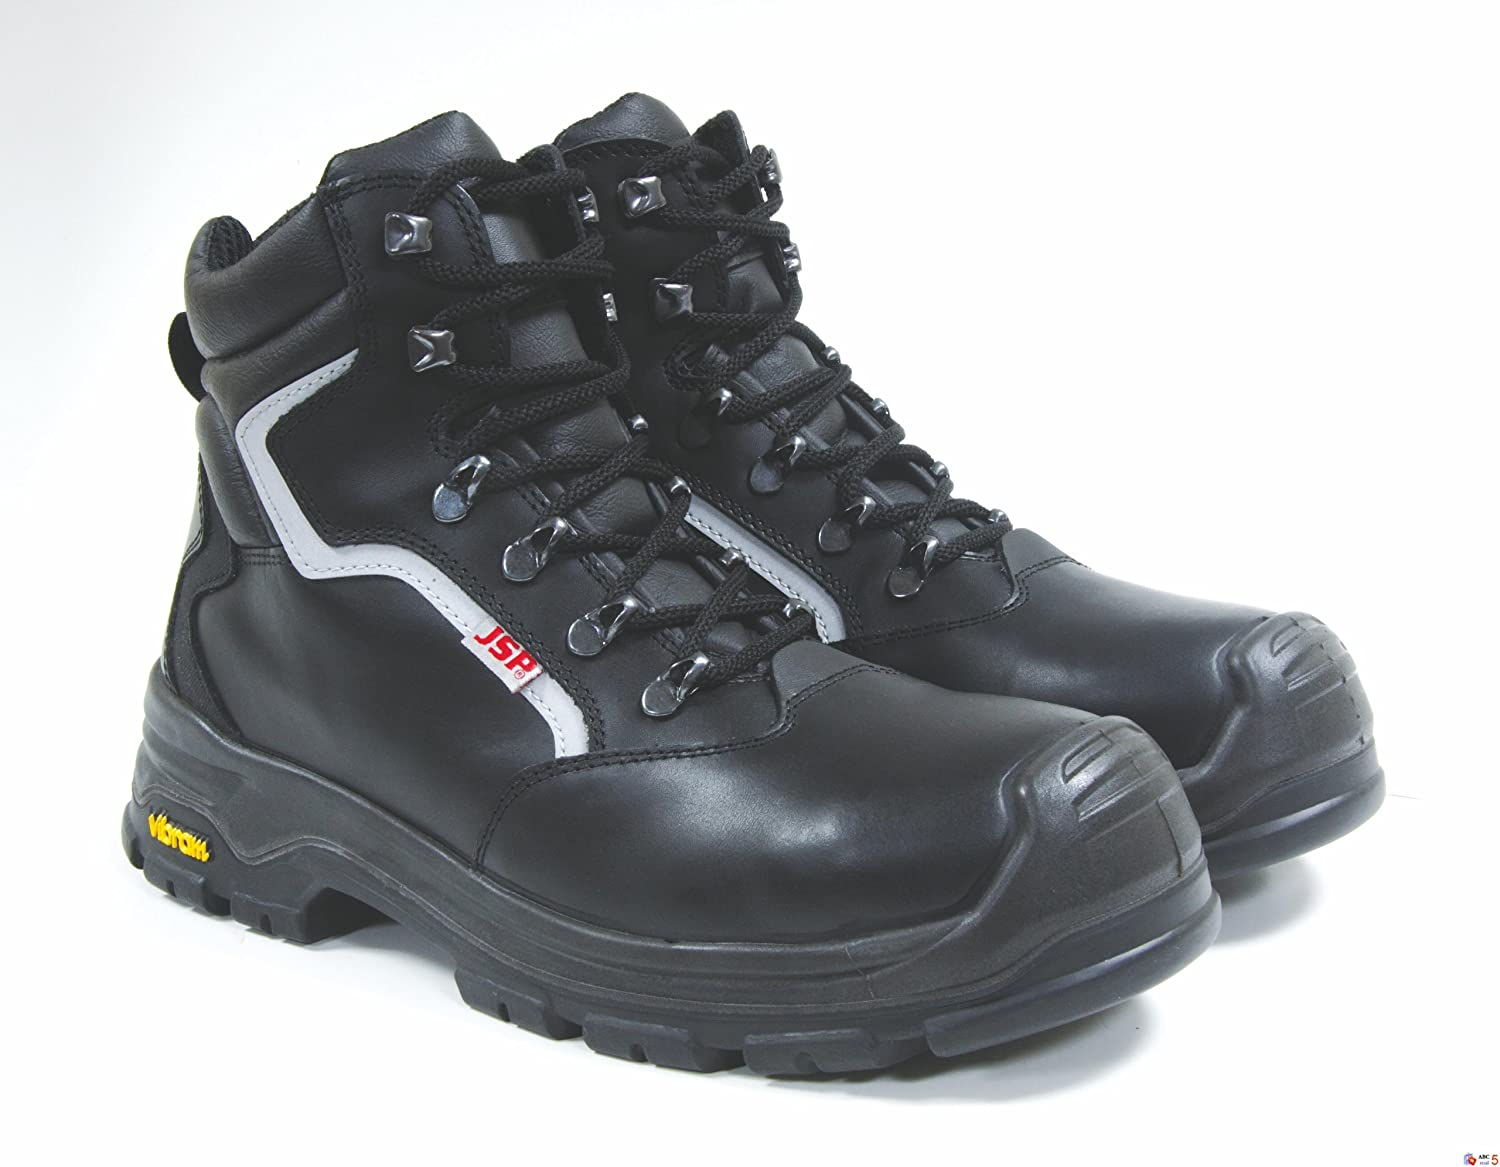 Rock Fall RF4500  Titanium S3 black high safety boot with side-zip and midsole